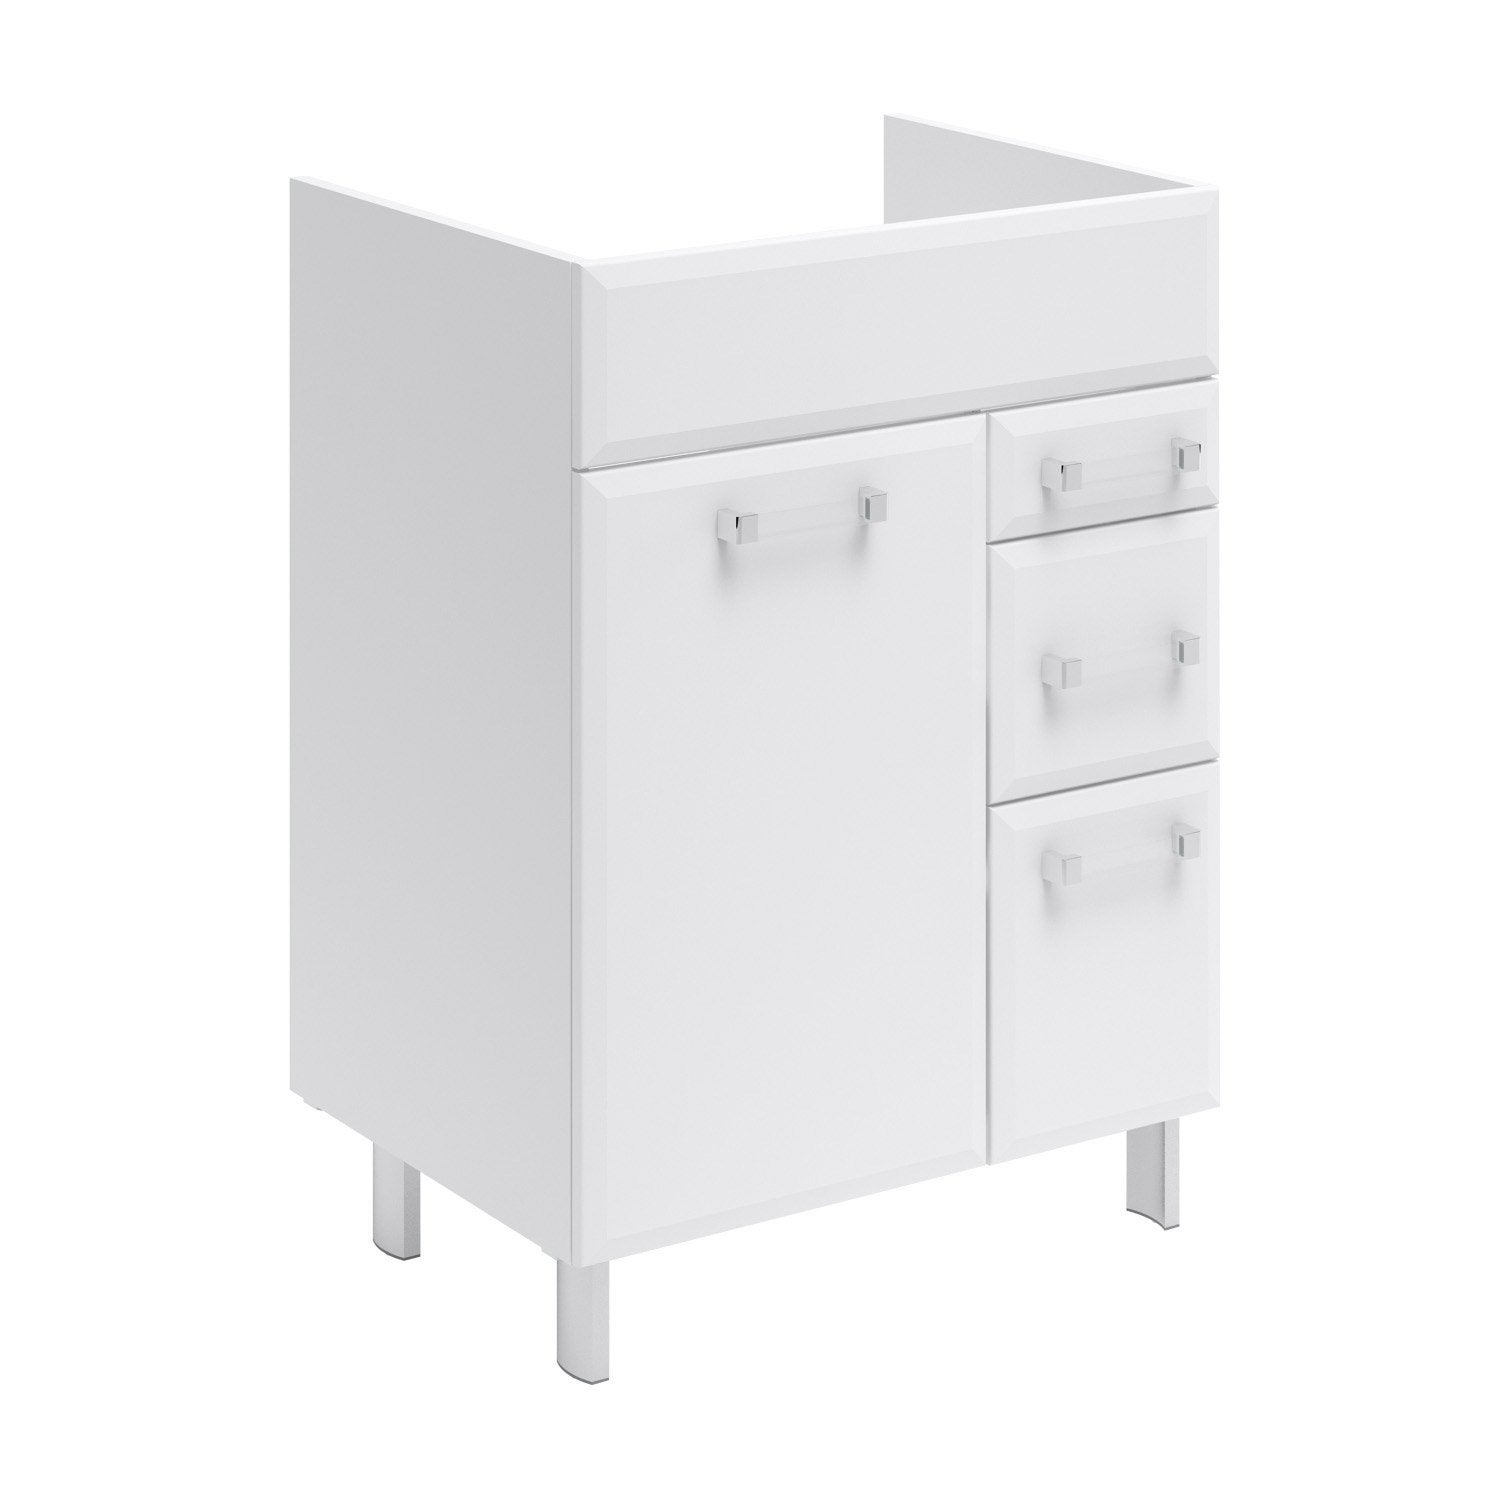 Meuble sous vasque opale blanc l60xh84xp45 2 cm 1 porte for Meuble porte vasque